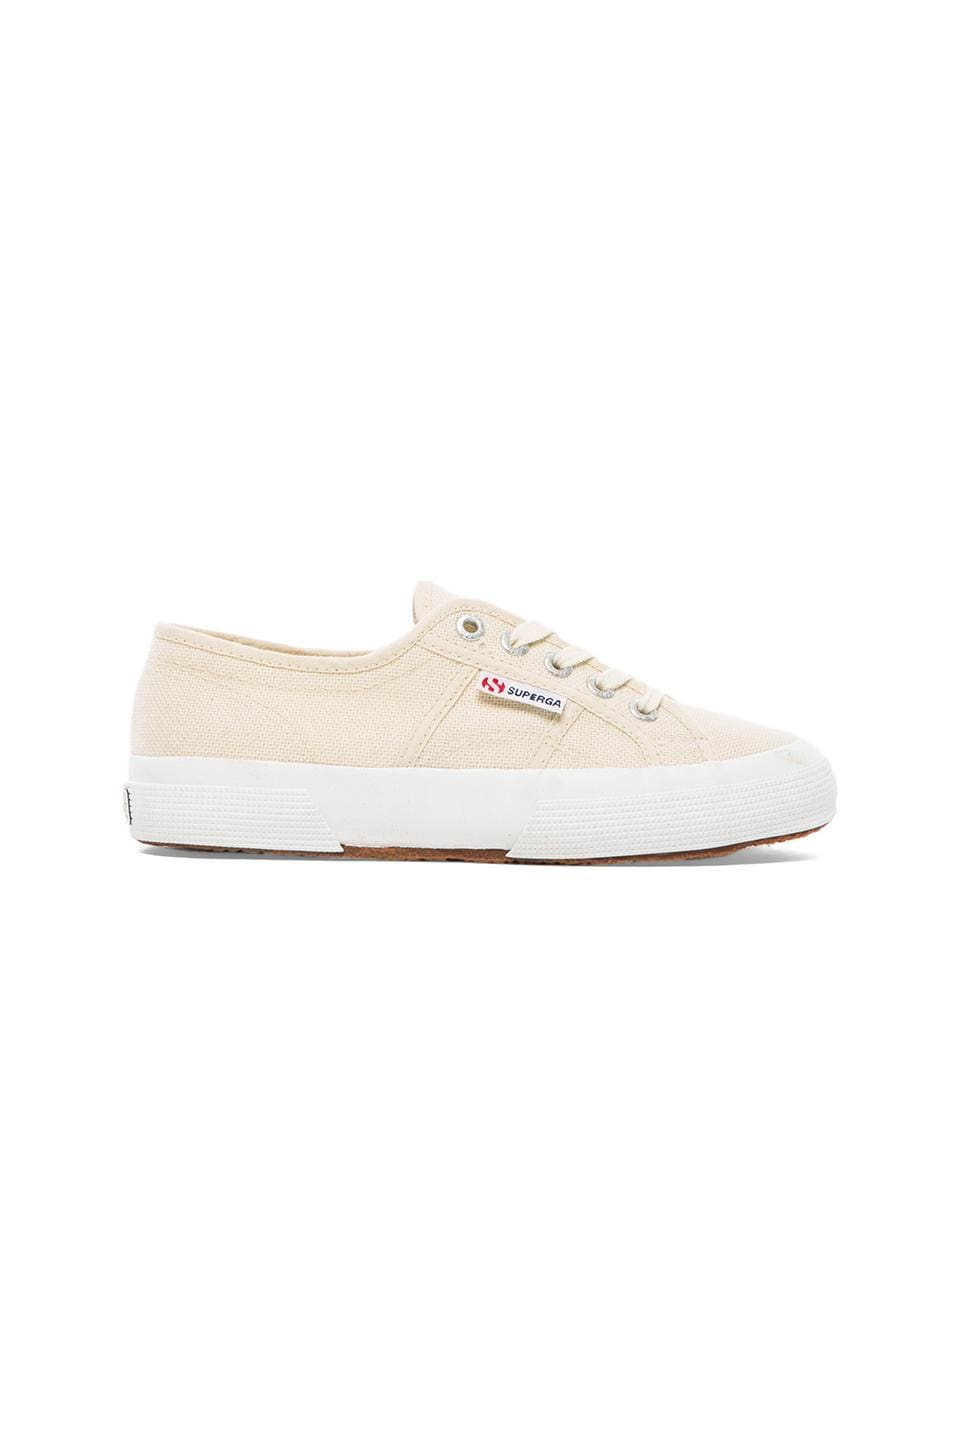 Superga Cotu Classic Sneakers in Ivory